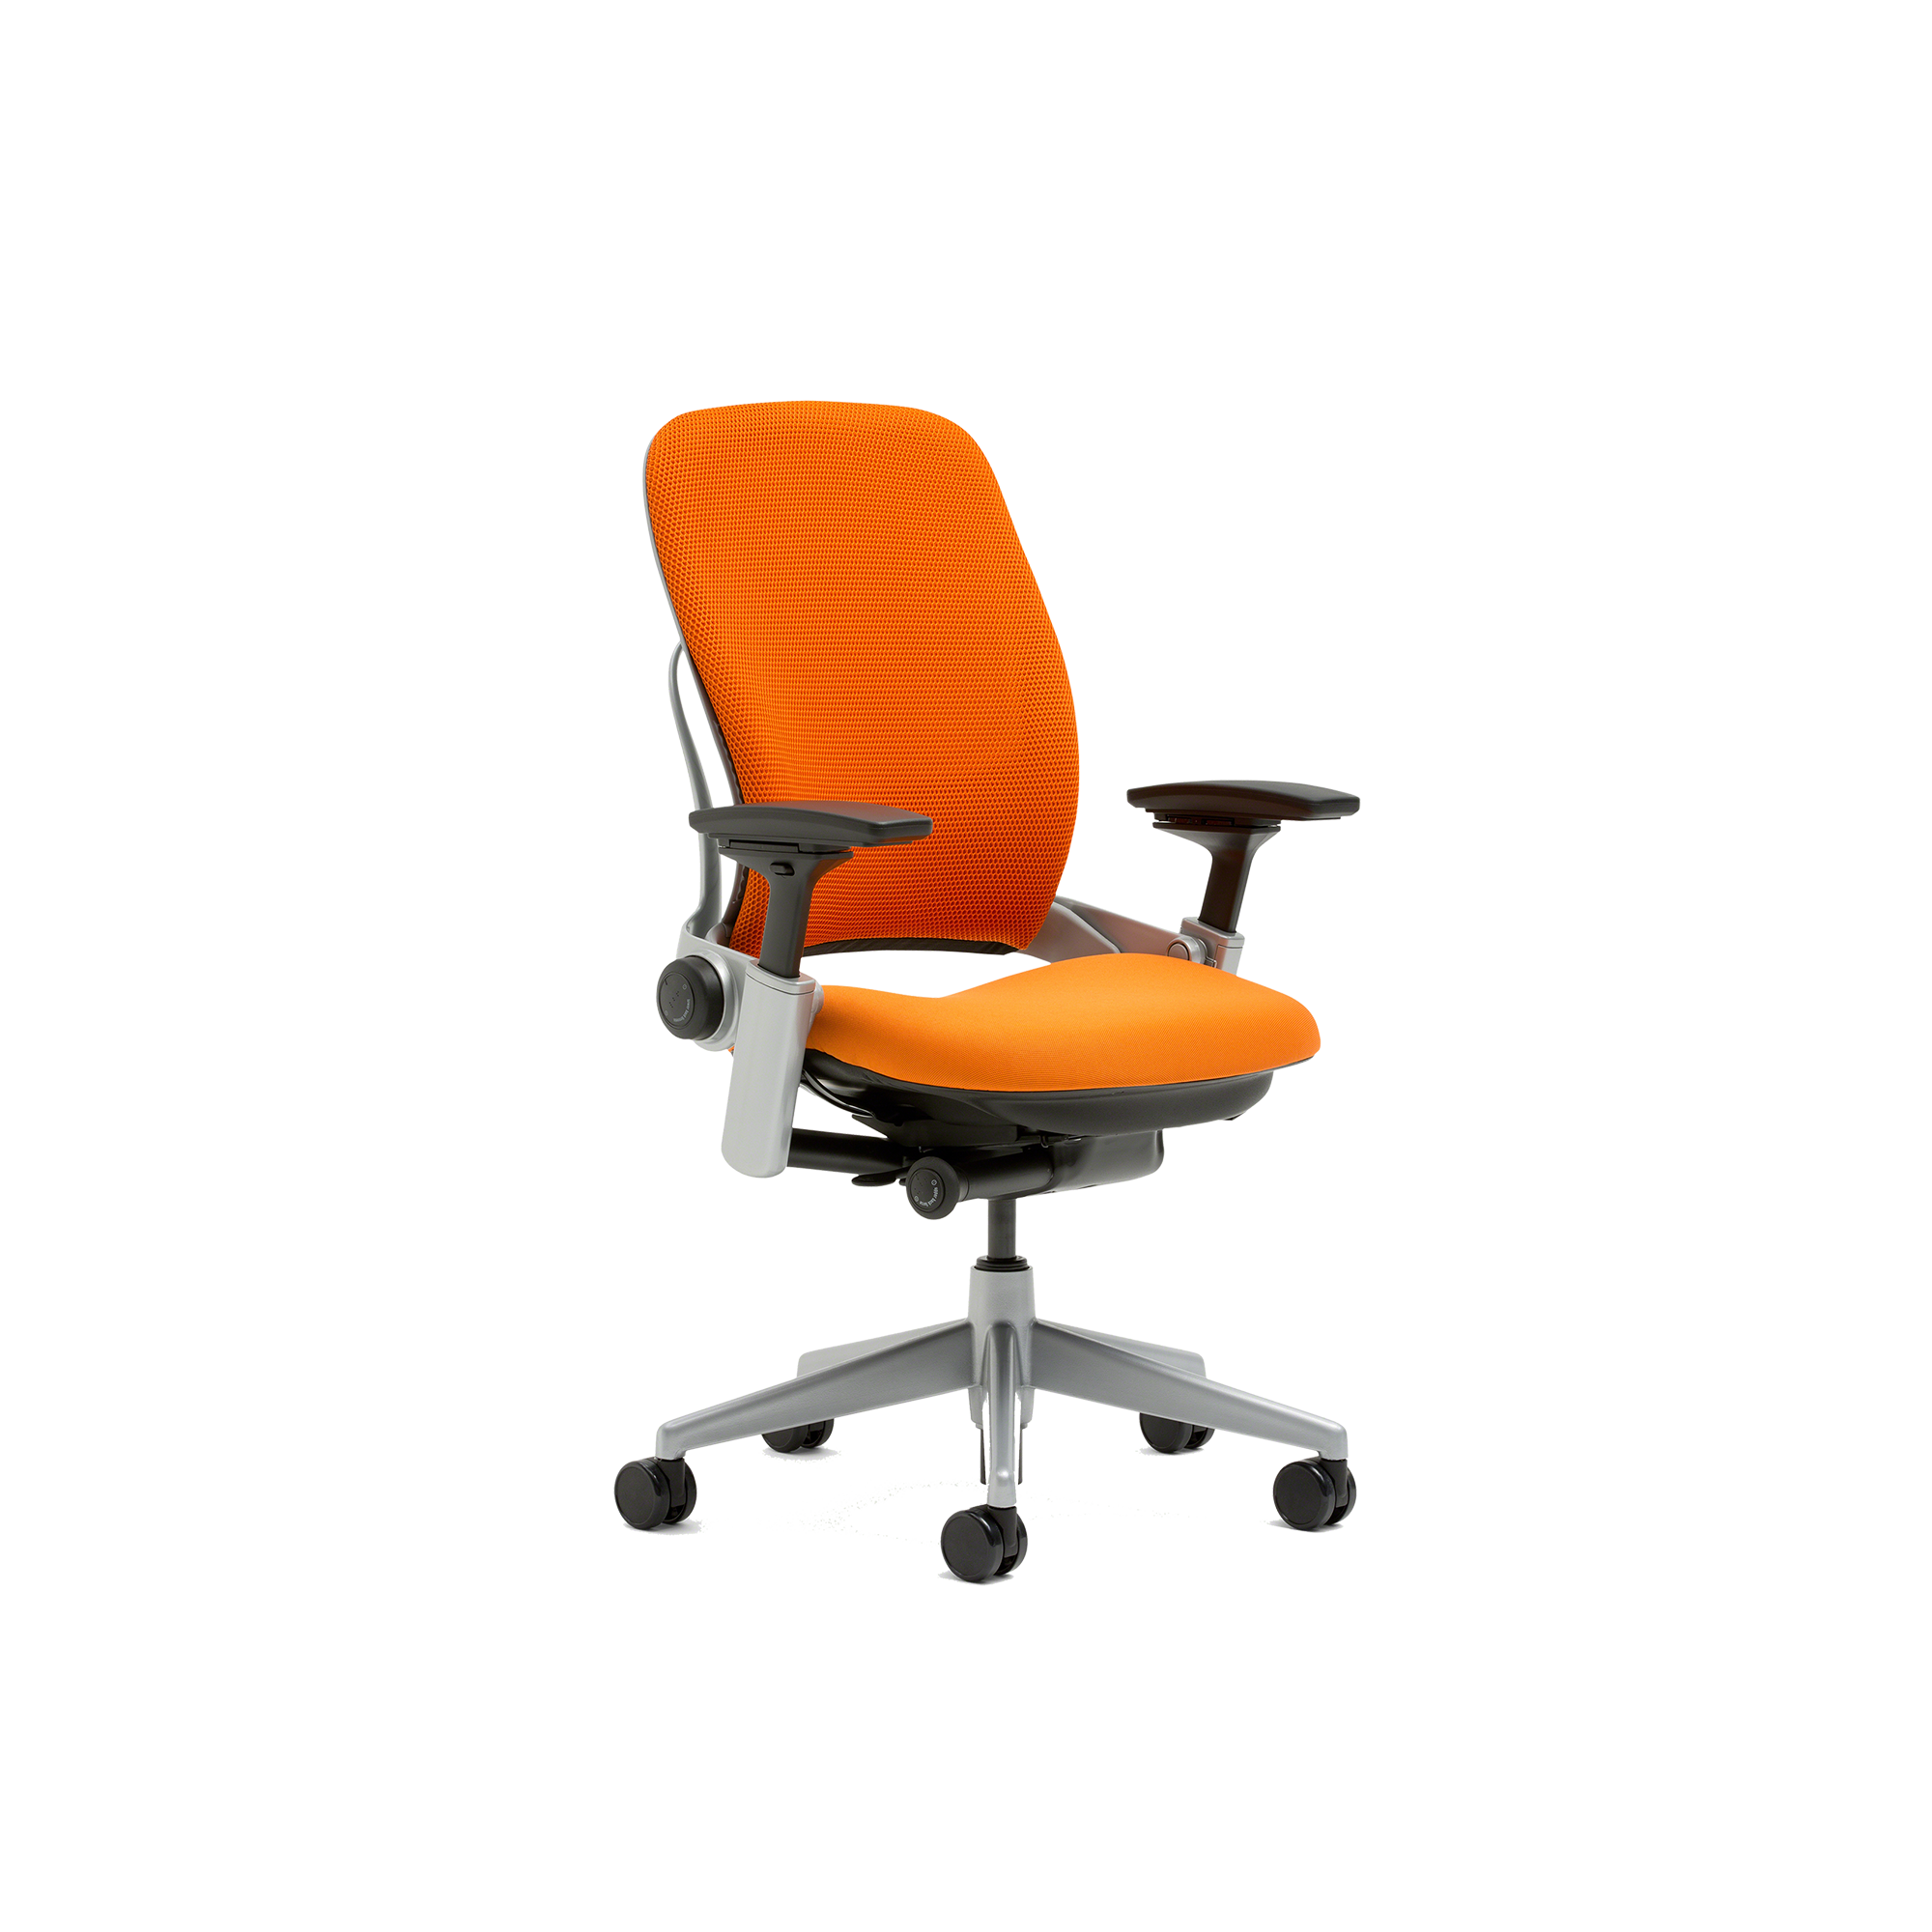 office chair wiki. The Chair Office Wiki S